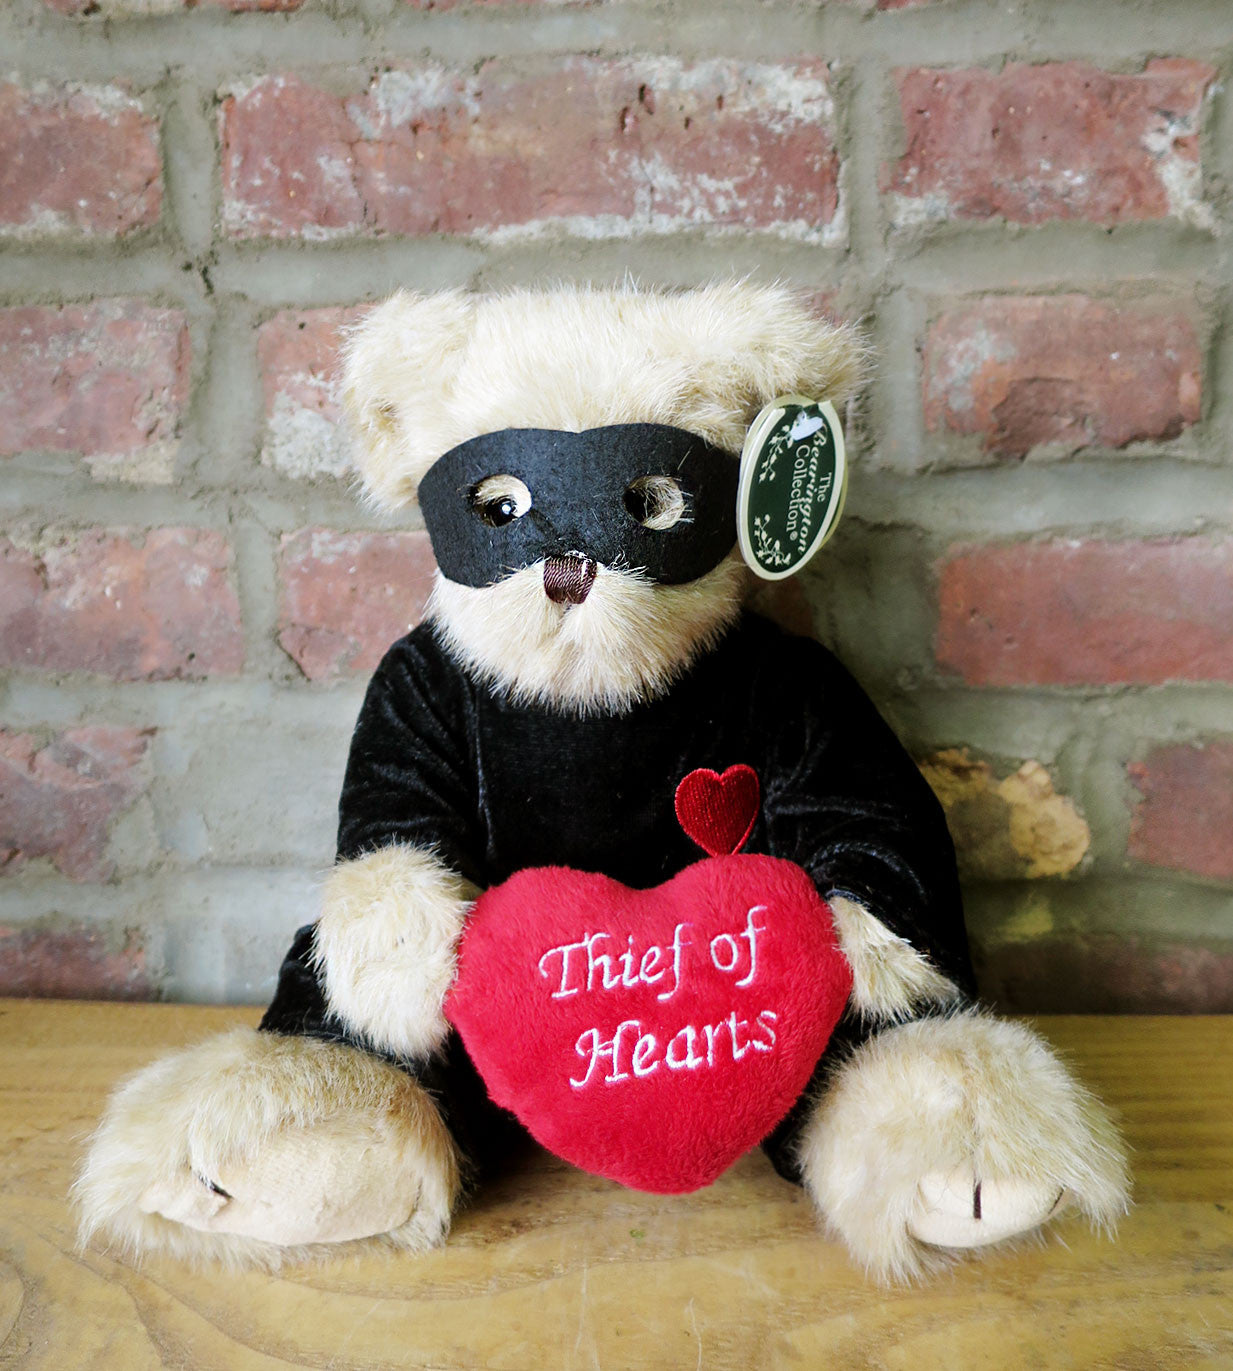 Thief of Hearts Teddy Bear